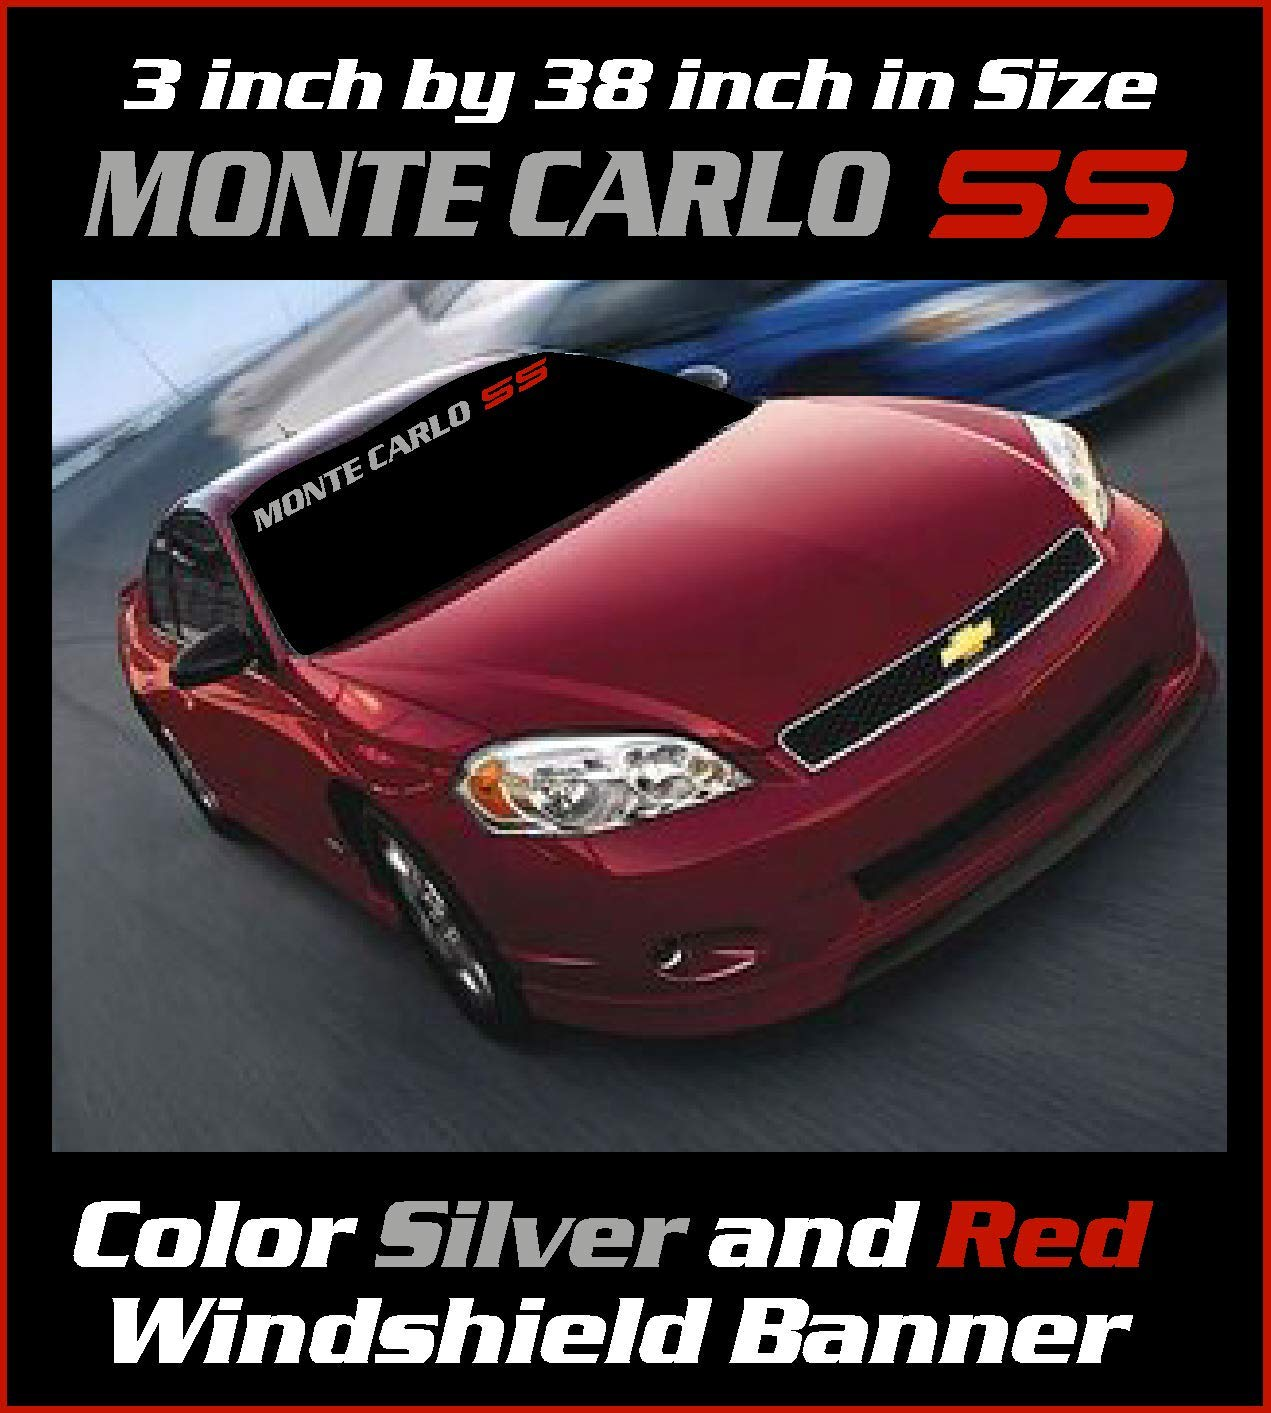 Sticker Emblem 3.5 inch by 38 inch Metallic Silver and Red Monte Carlo SS Windshield Banner Graphic Decal